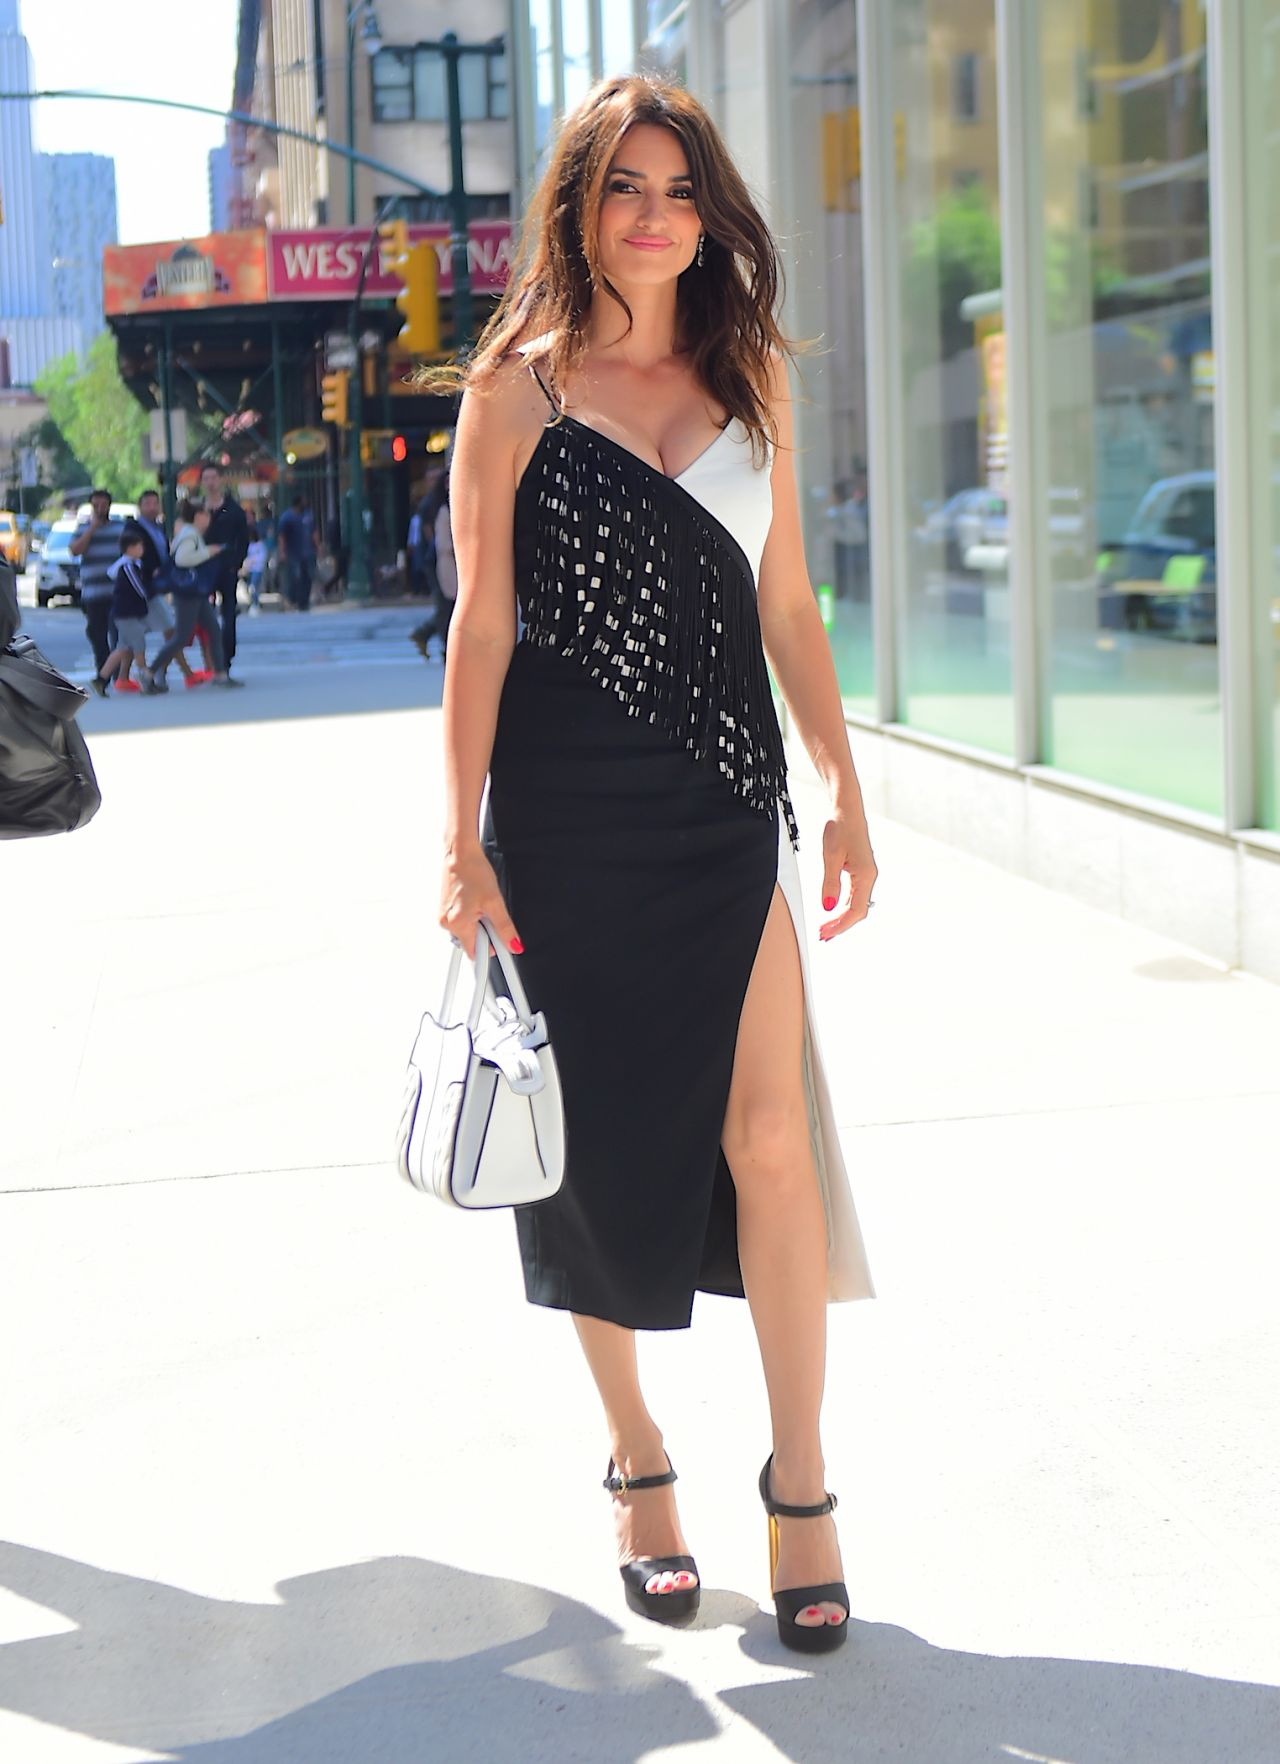 http://celebmafia.com/wp-content/uploads/2018/06/penelope-cruz-sag-aftra-foundation-in-nyc-06-04-2018-12.jpg